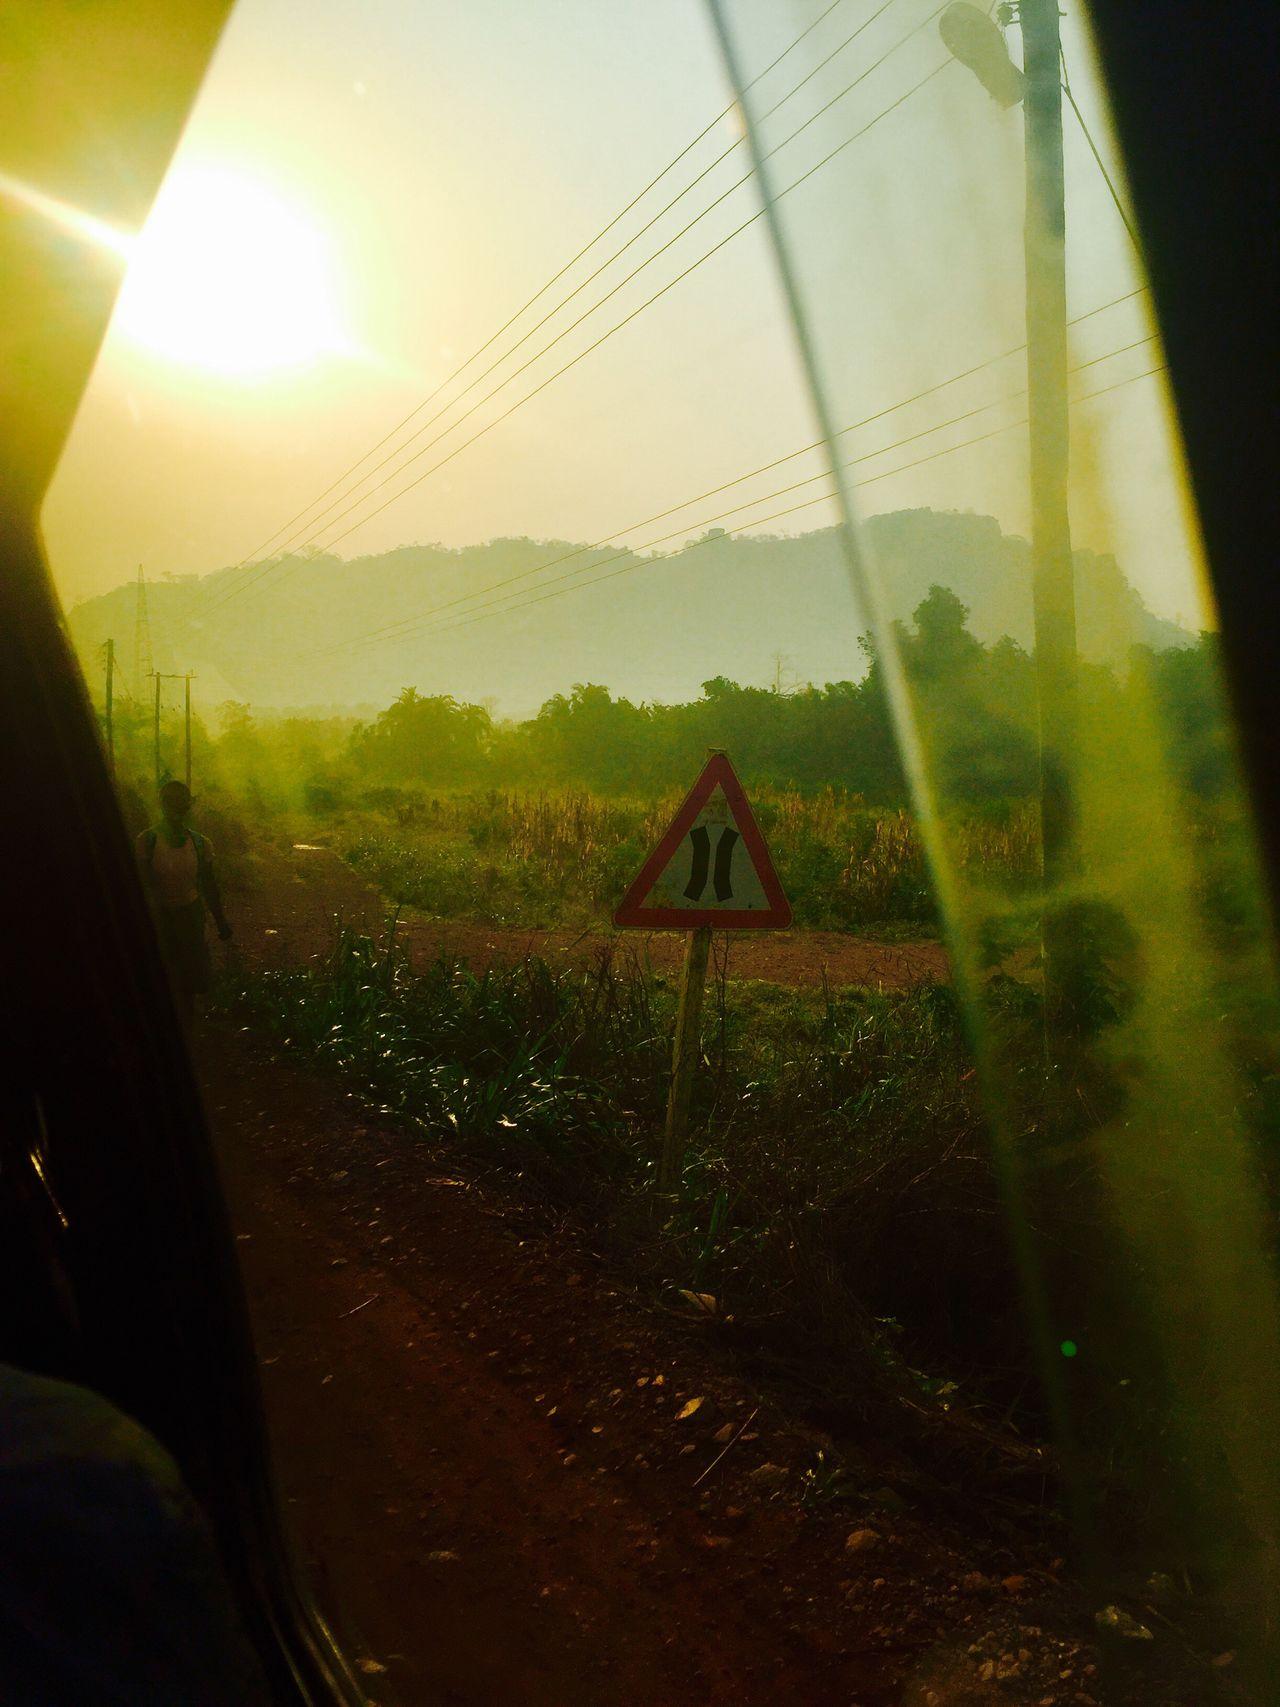 Transportation Landscape Nature Vehicle Interior Road Day Outdoors Electricity Pylon Beauty In Nature Sky Car